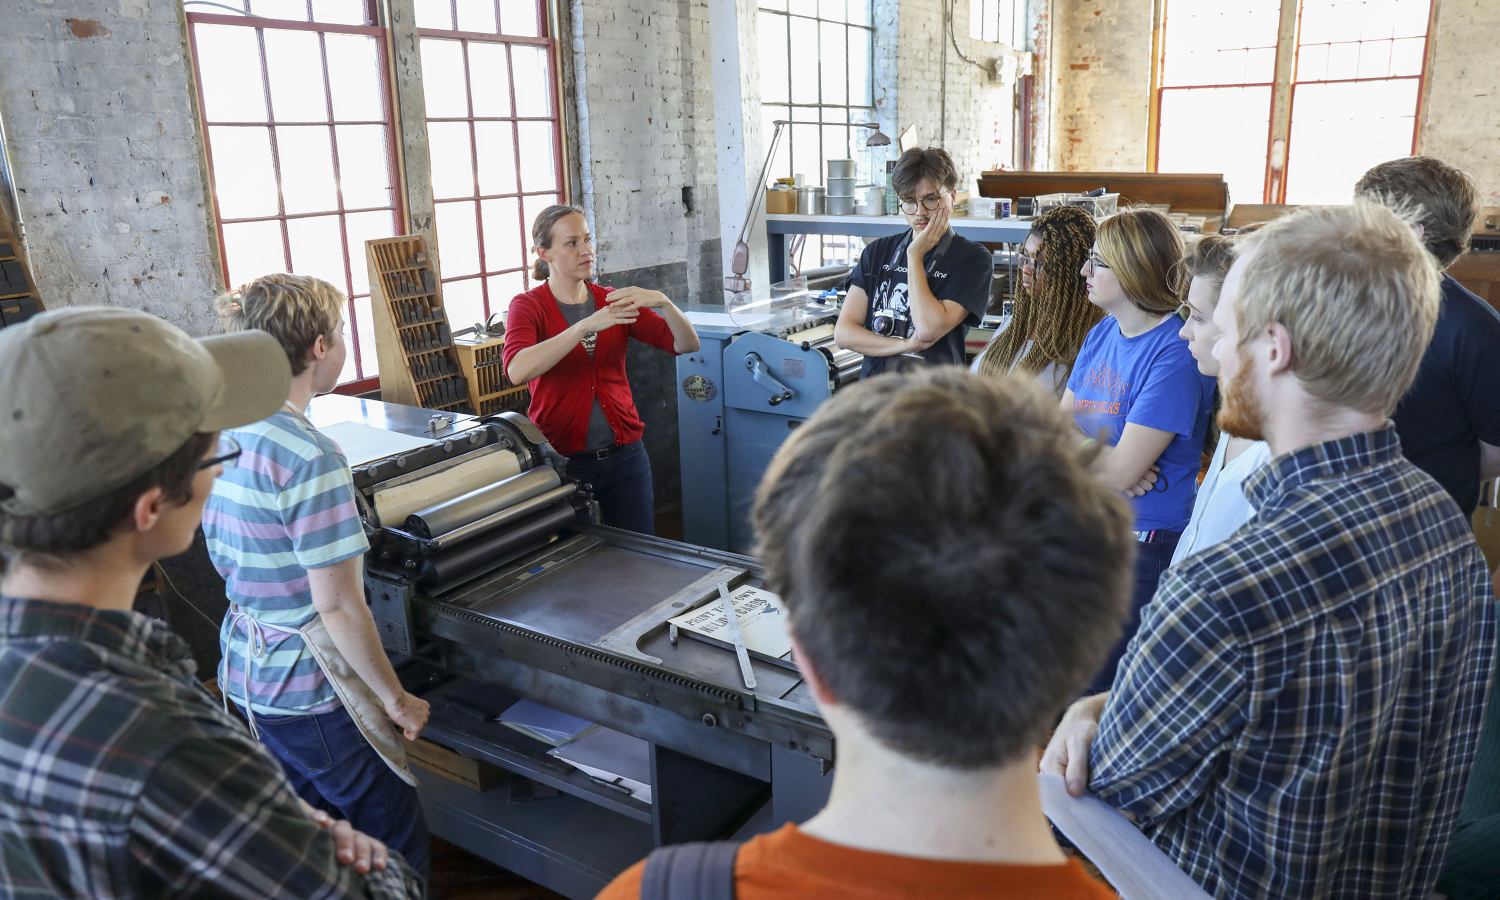 Associate Professor of English and Comparative Literature Kathryn Cowles speaks to students about the printing press during a visit to the Cracker Factory in Geneva, N.Y.